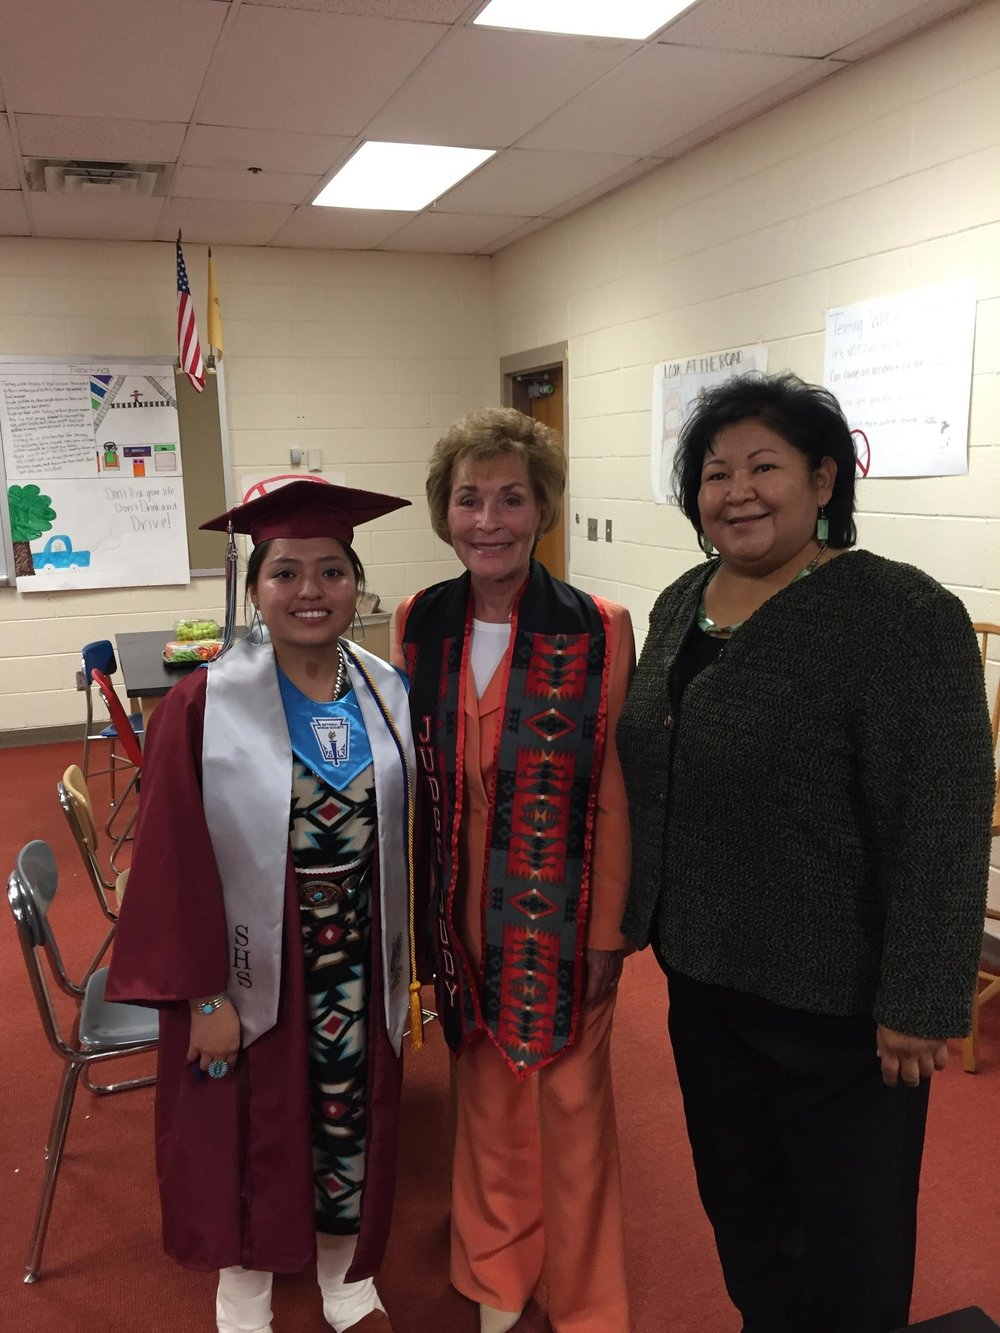 Judge Judy at Shiprock High School for commencement speech